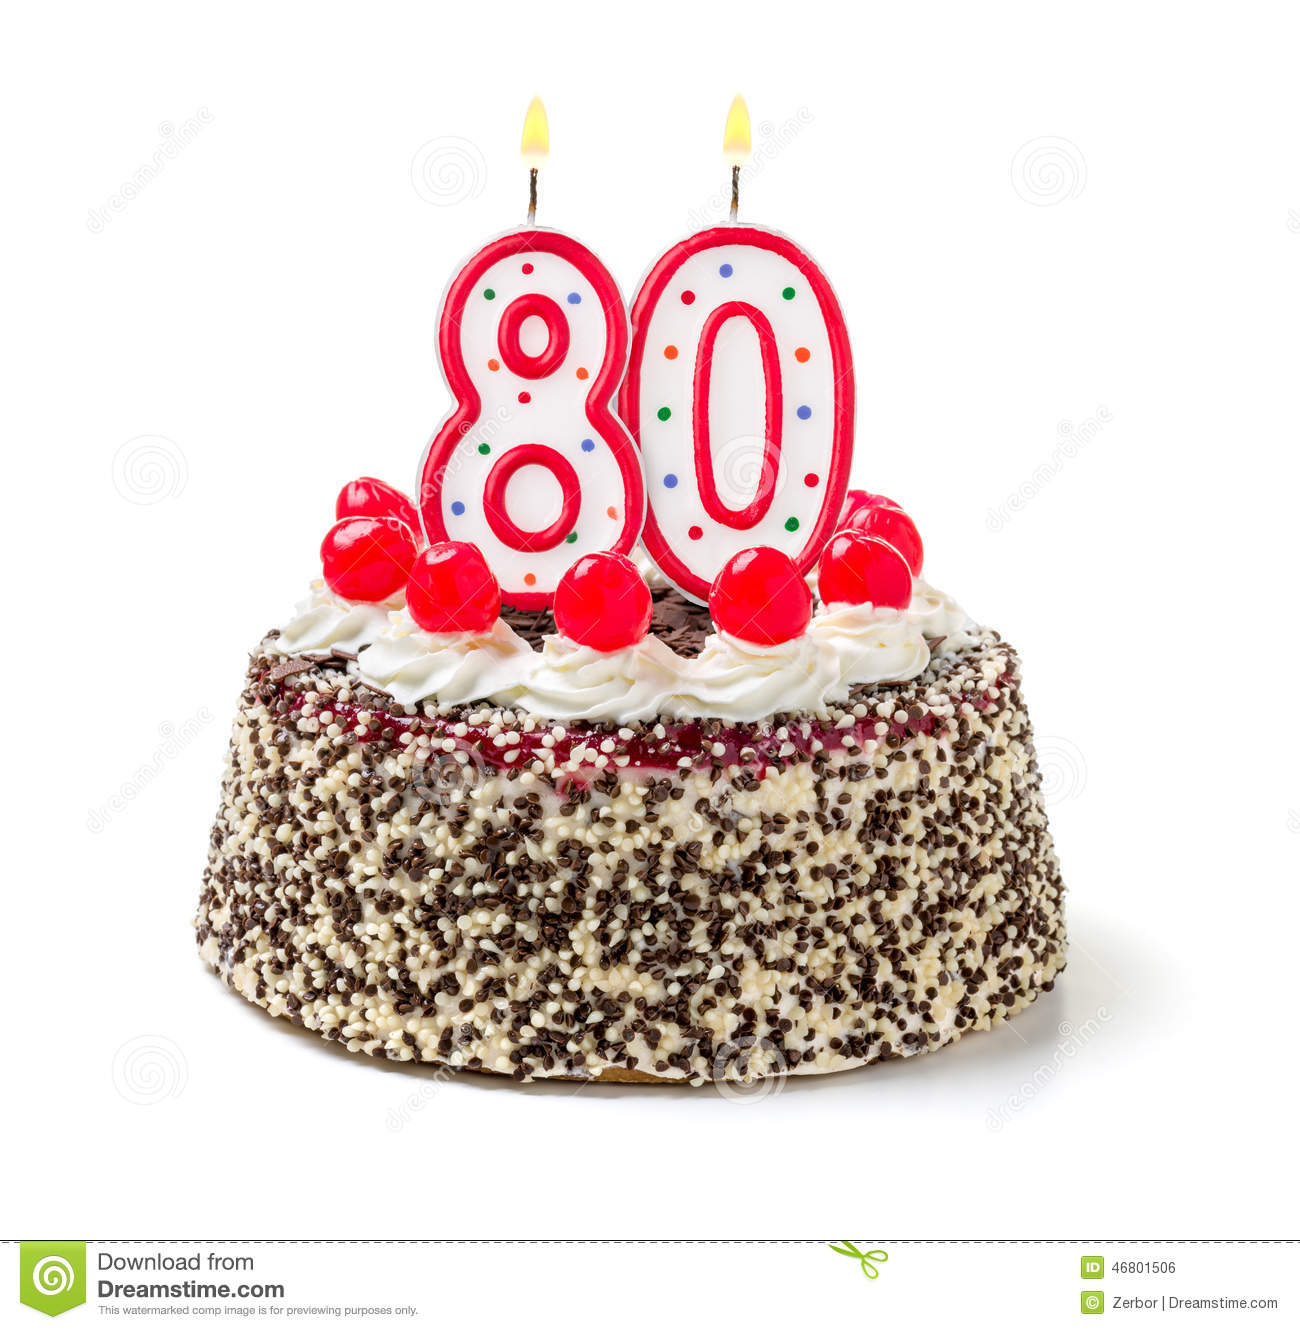 Cake With Burning Candle Number 80